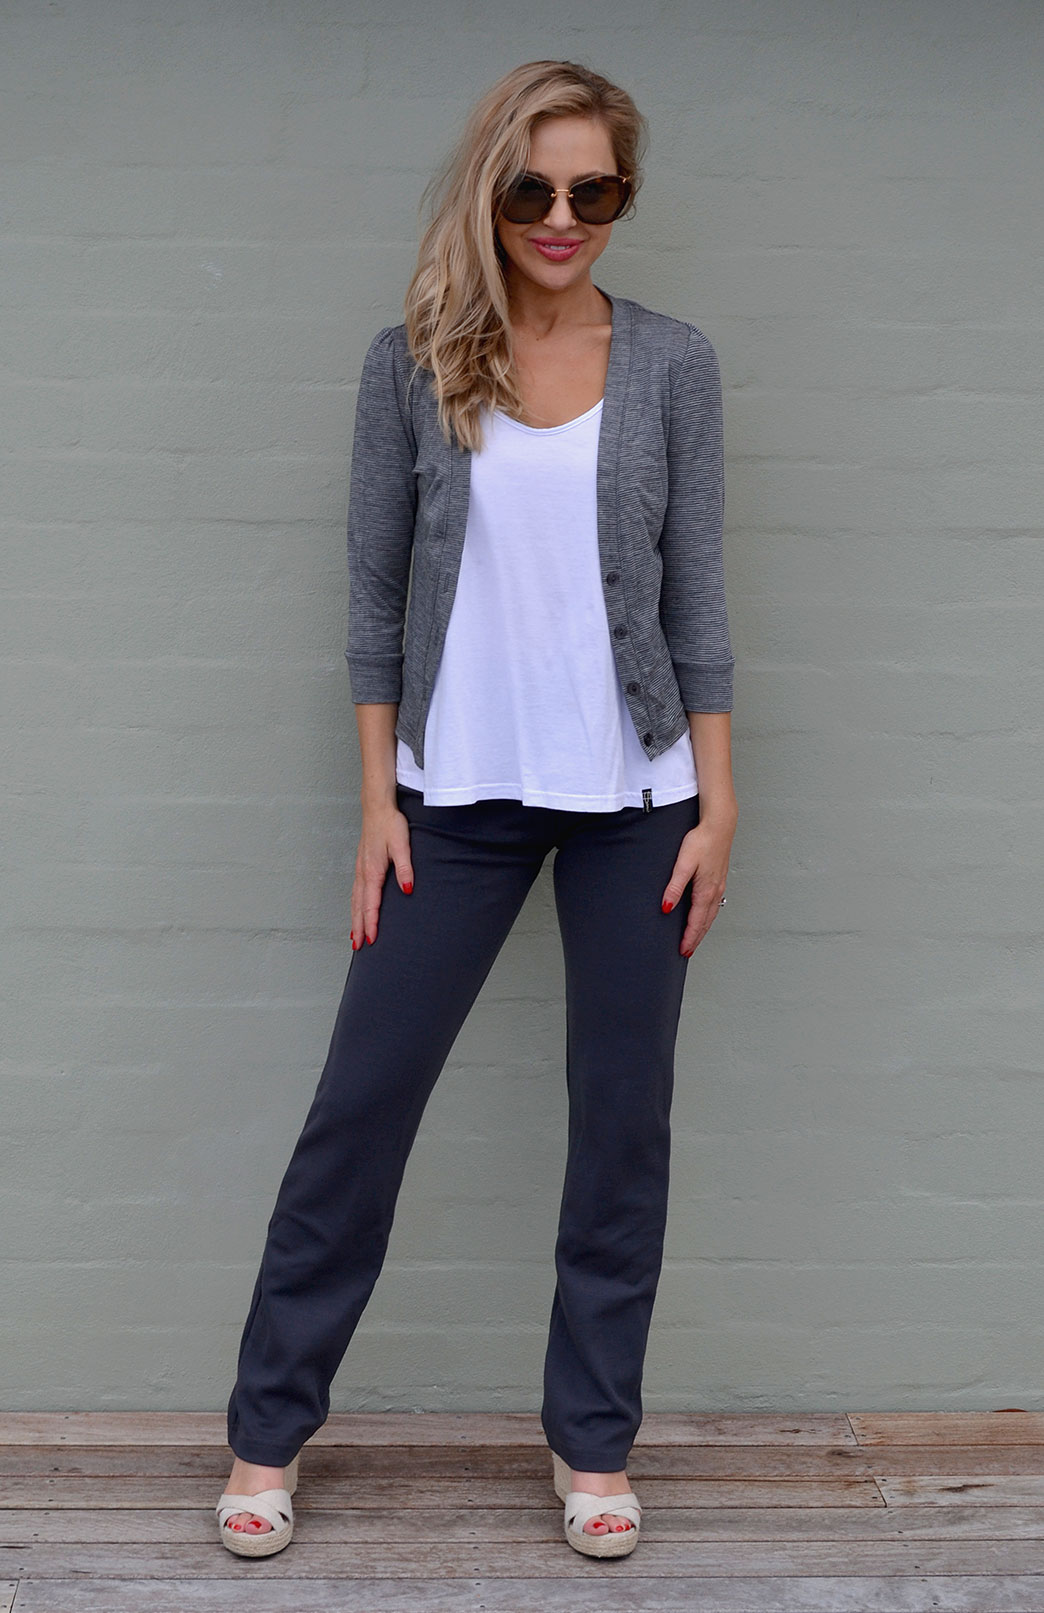 Crop Cardigan - 3/4 Sleeve - Women's Soft Grey and Black Fine Pinstripe Crop Short Cardigan with 3/4 Sleeves and Buttons - Smitten Merino Tasmania Australia